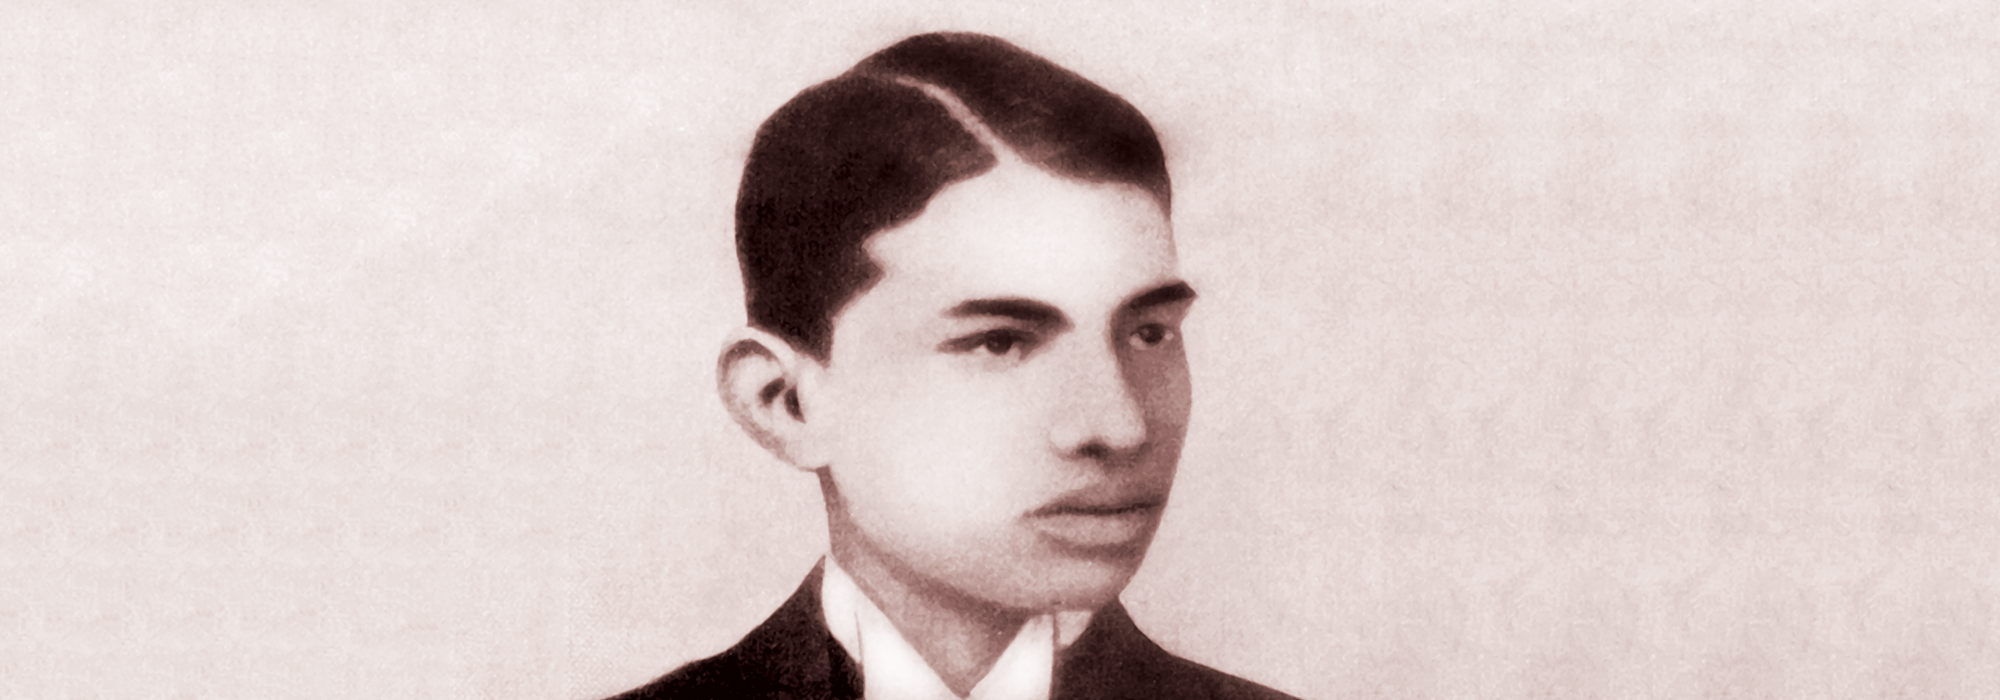 Gandhi at age 22 in UK as a law student